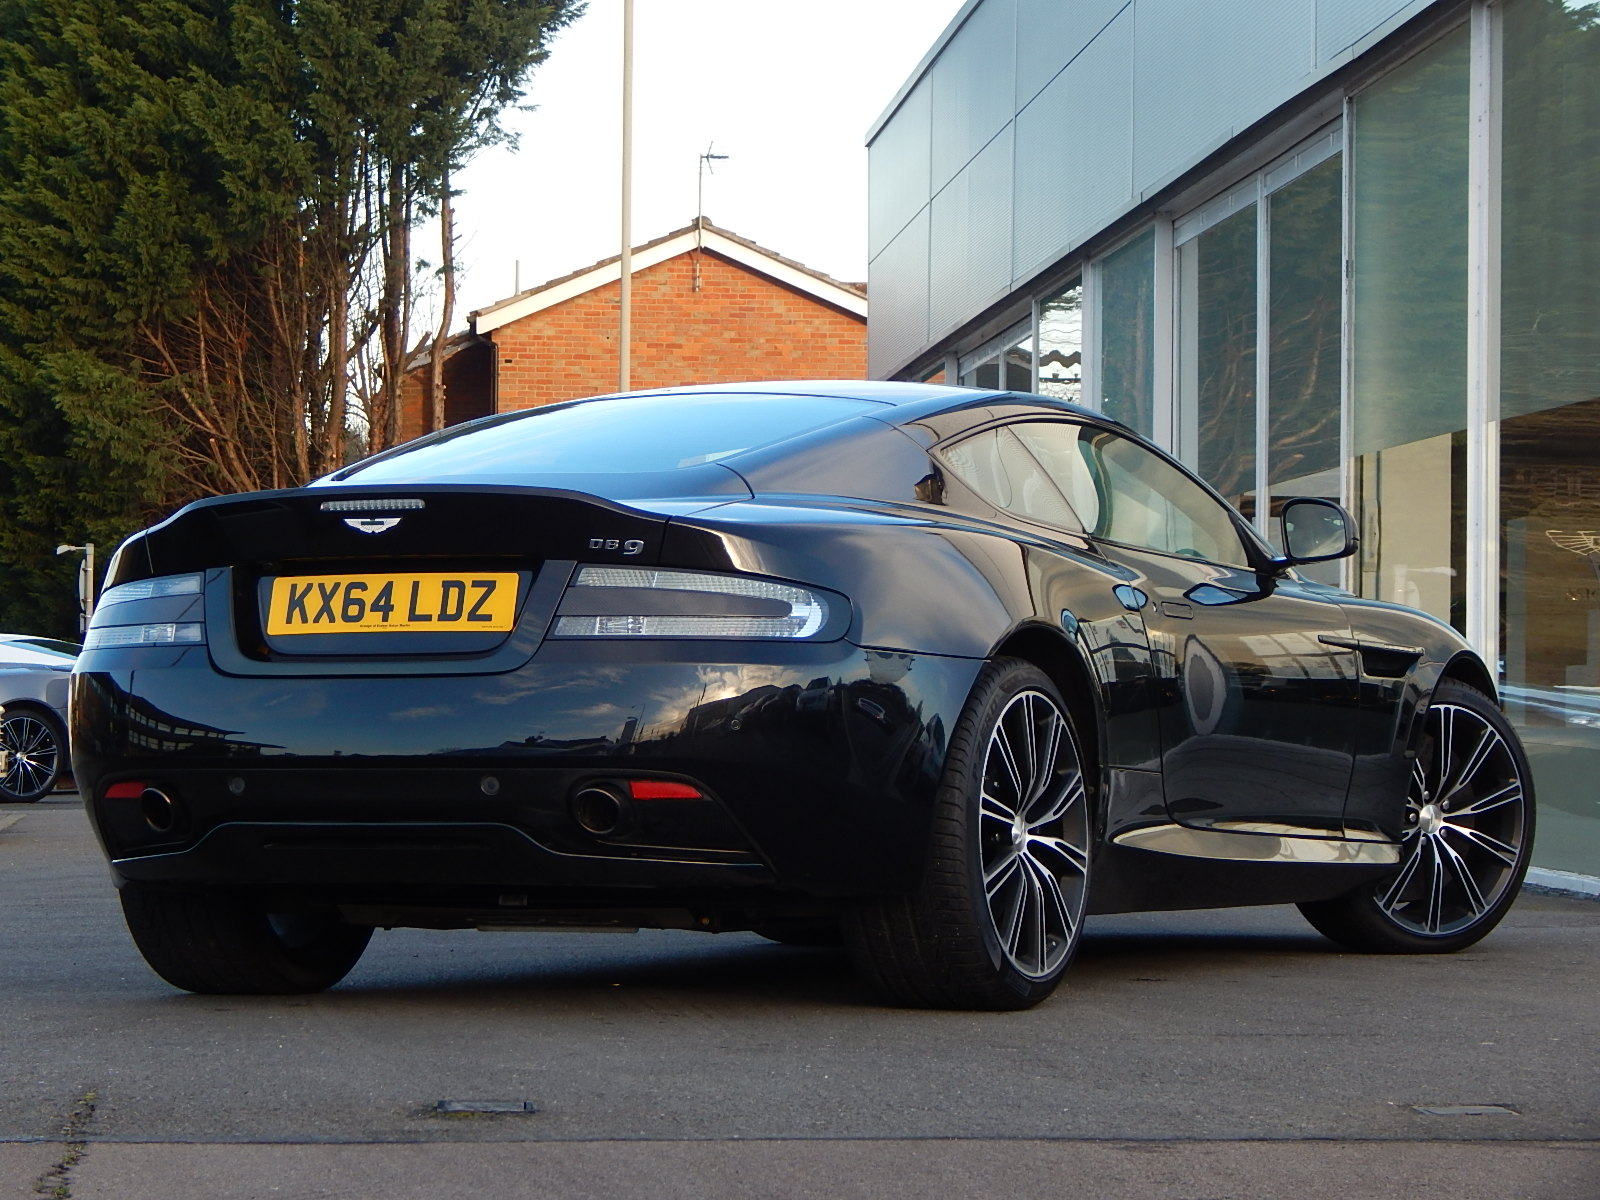 Aston Martin DB9 V12 2dr Touchtronic, Carbon Edition image 9